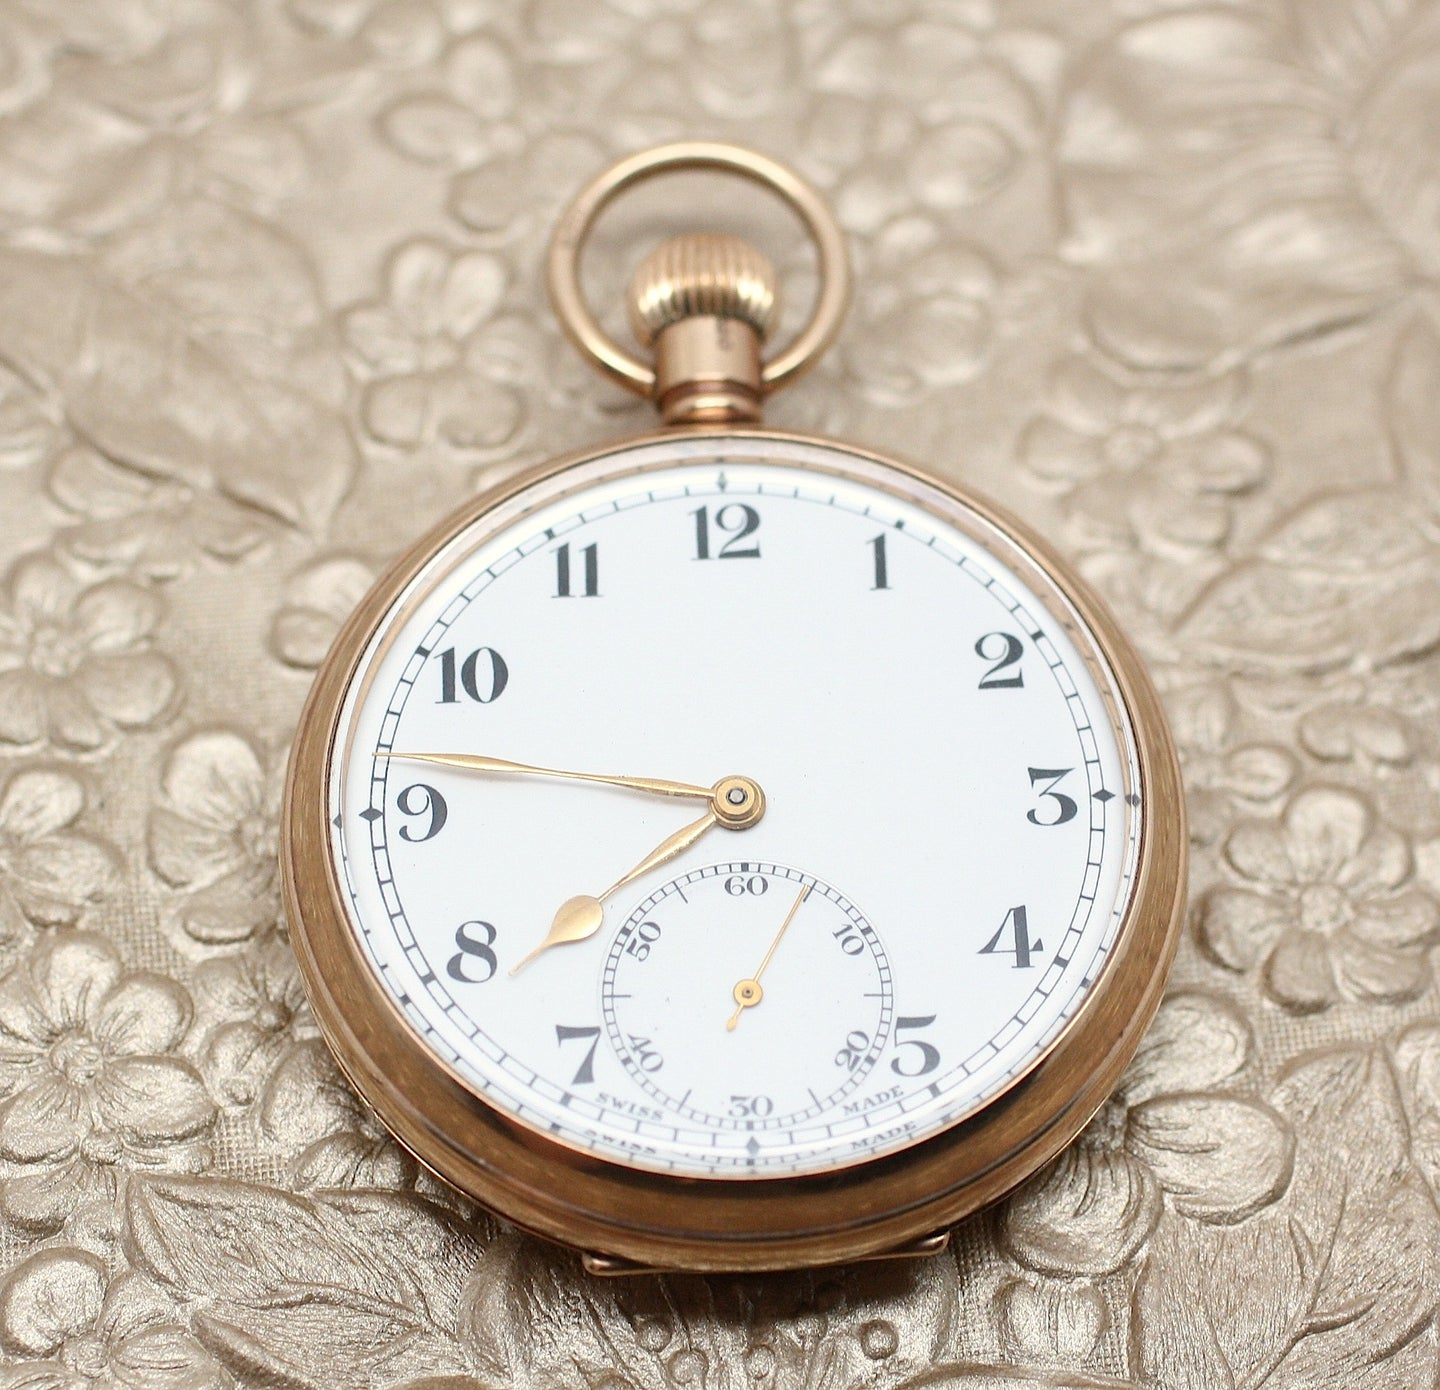 9K Birmingham England Pocket Watch